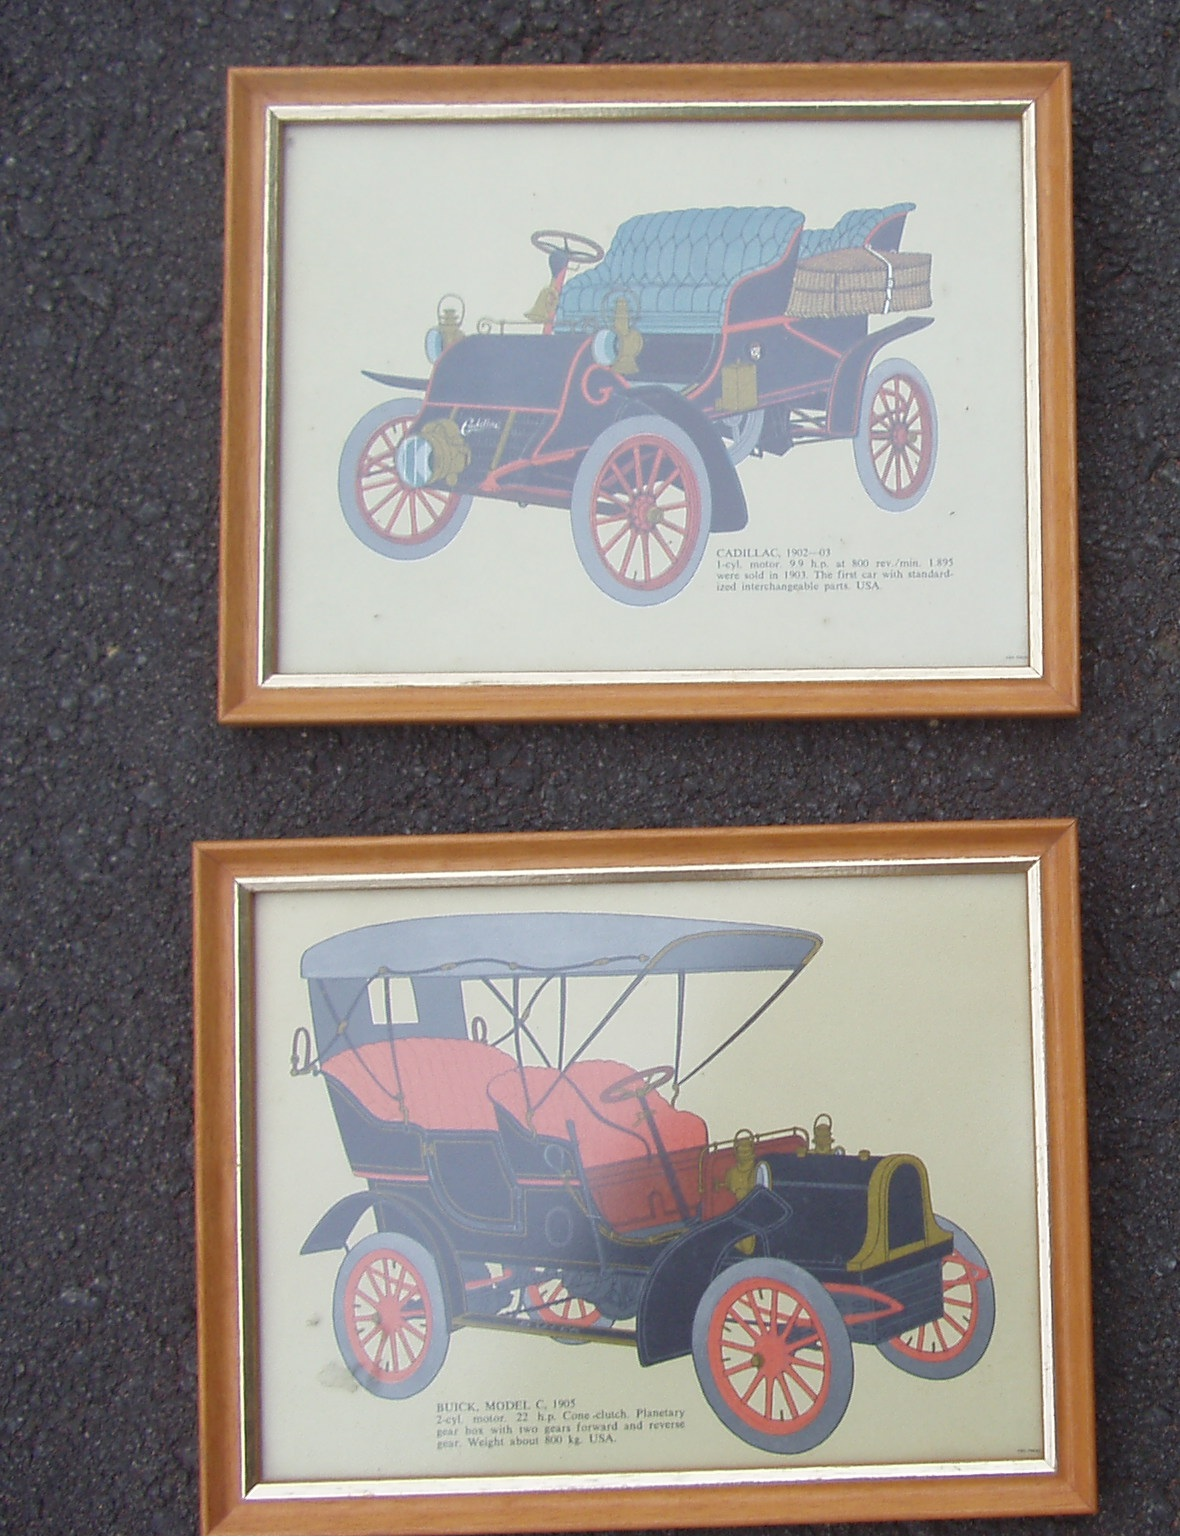 Vintage Car Pictures - Framed  - In excellent condition